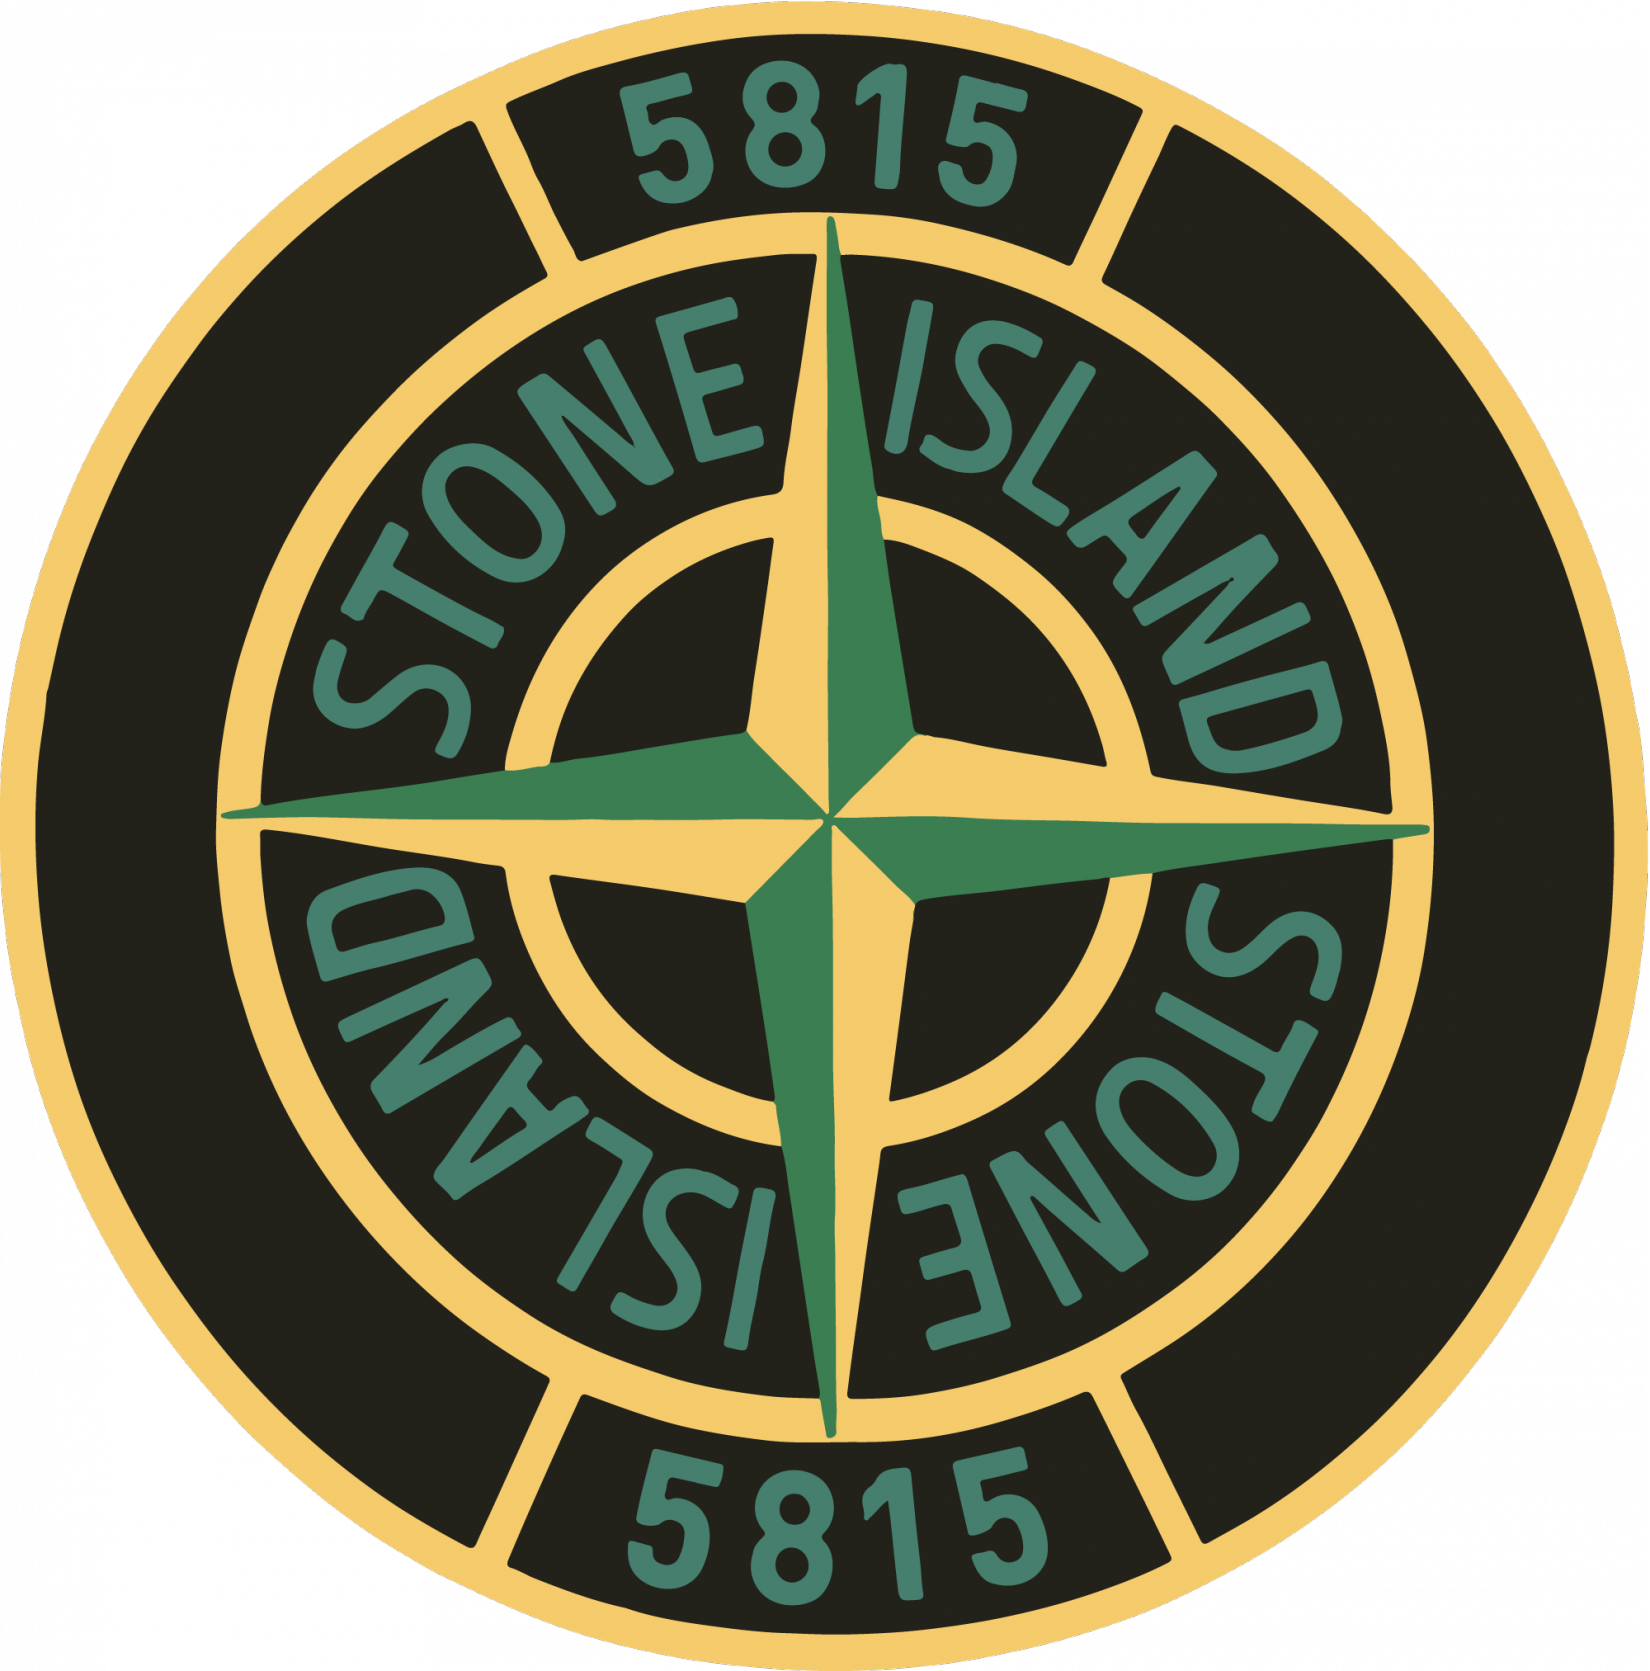 The Stone Island Font